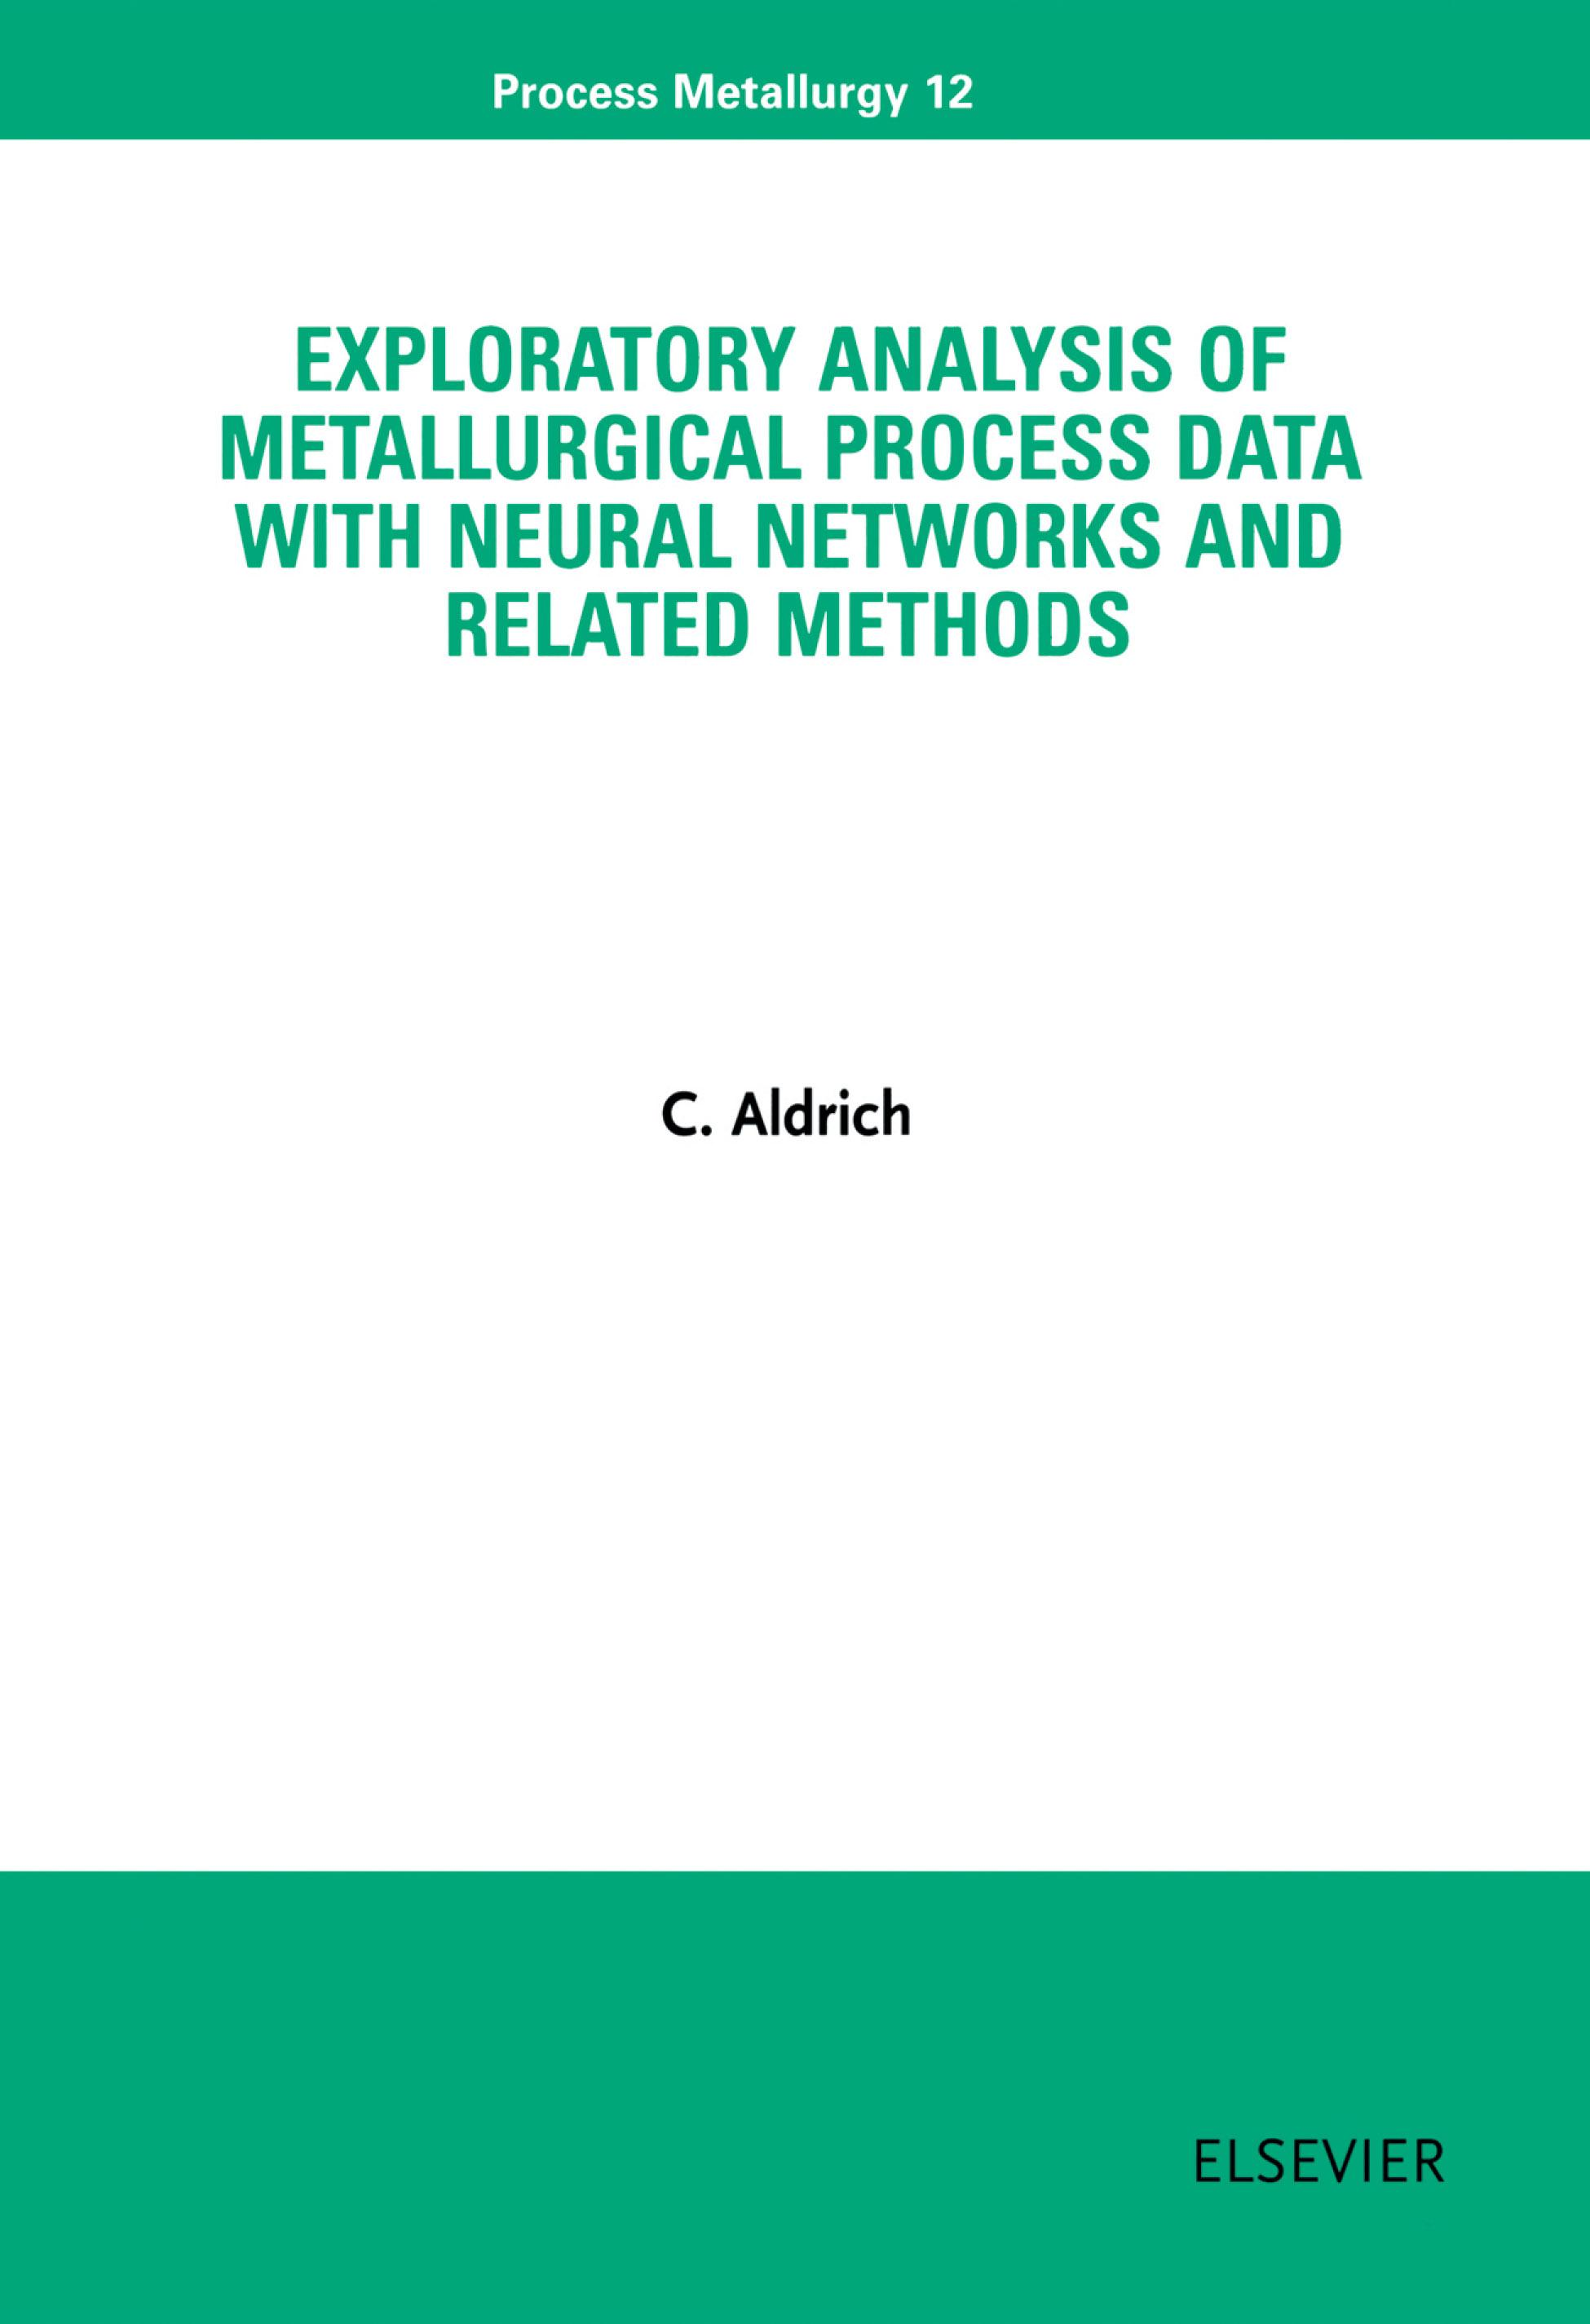 Exploratory Analysis of Metallurgical Process Data with Neural Networks and Related Methods EB9780080531465